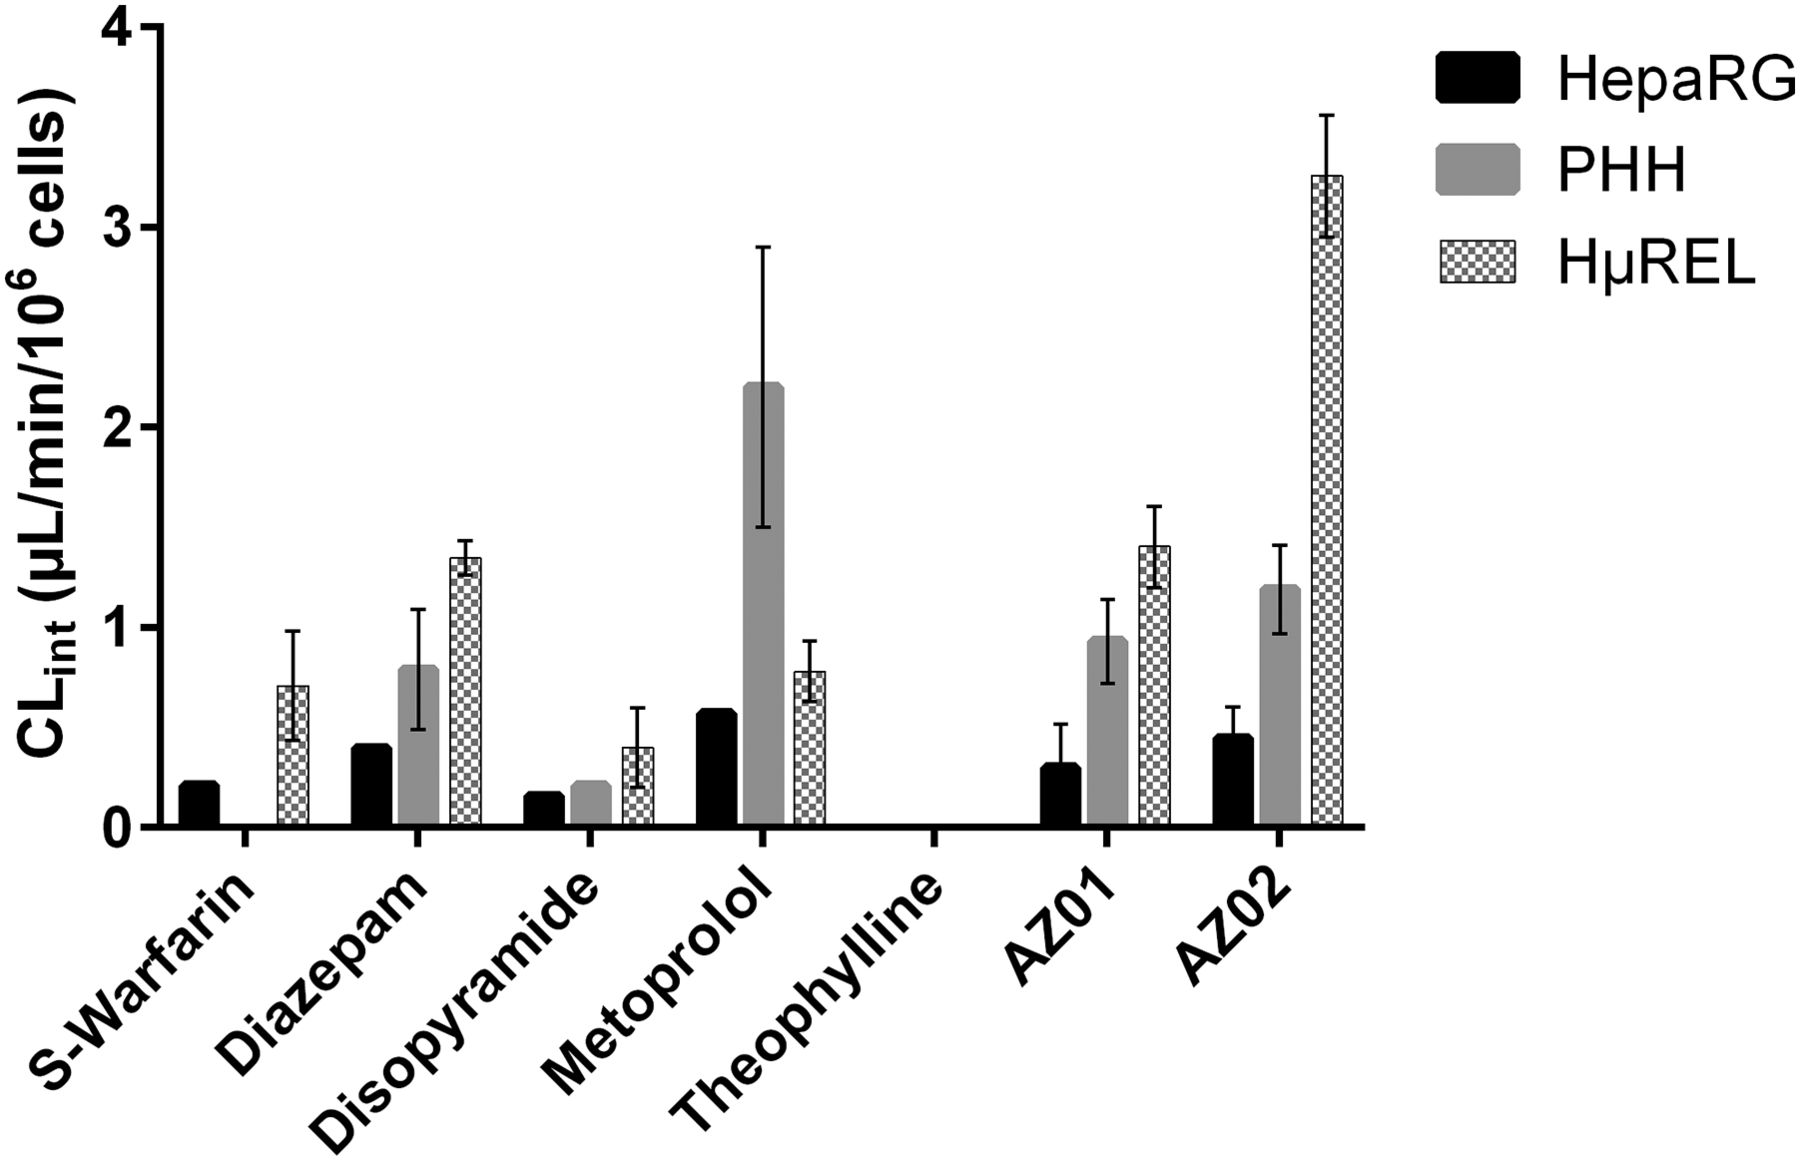 Determination of Human Hepatocyte Intrinsic Clearance for